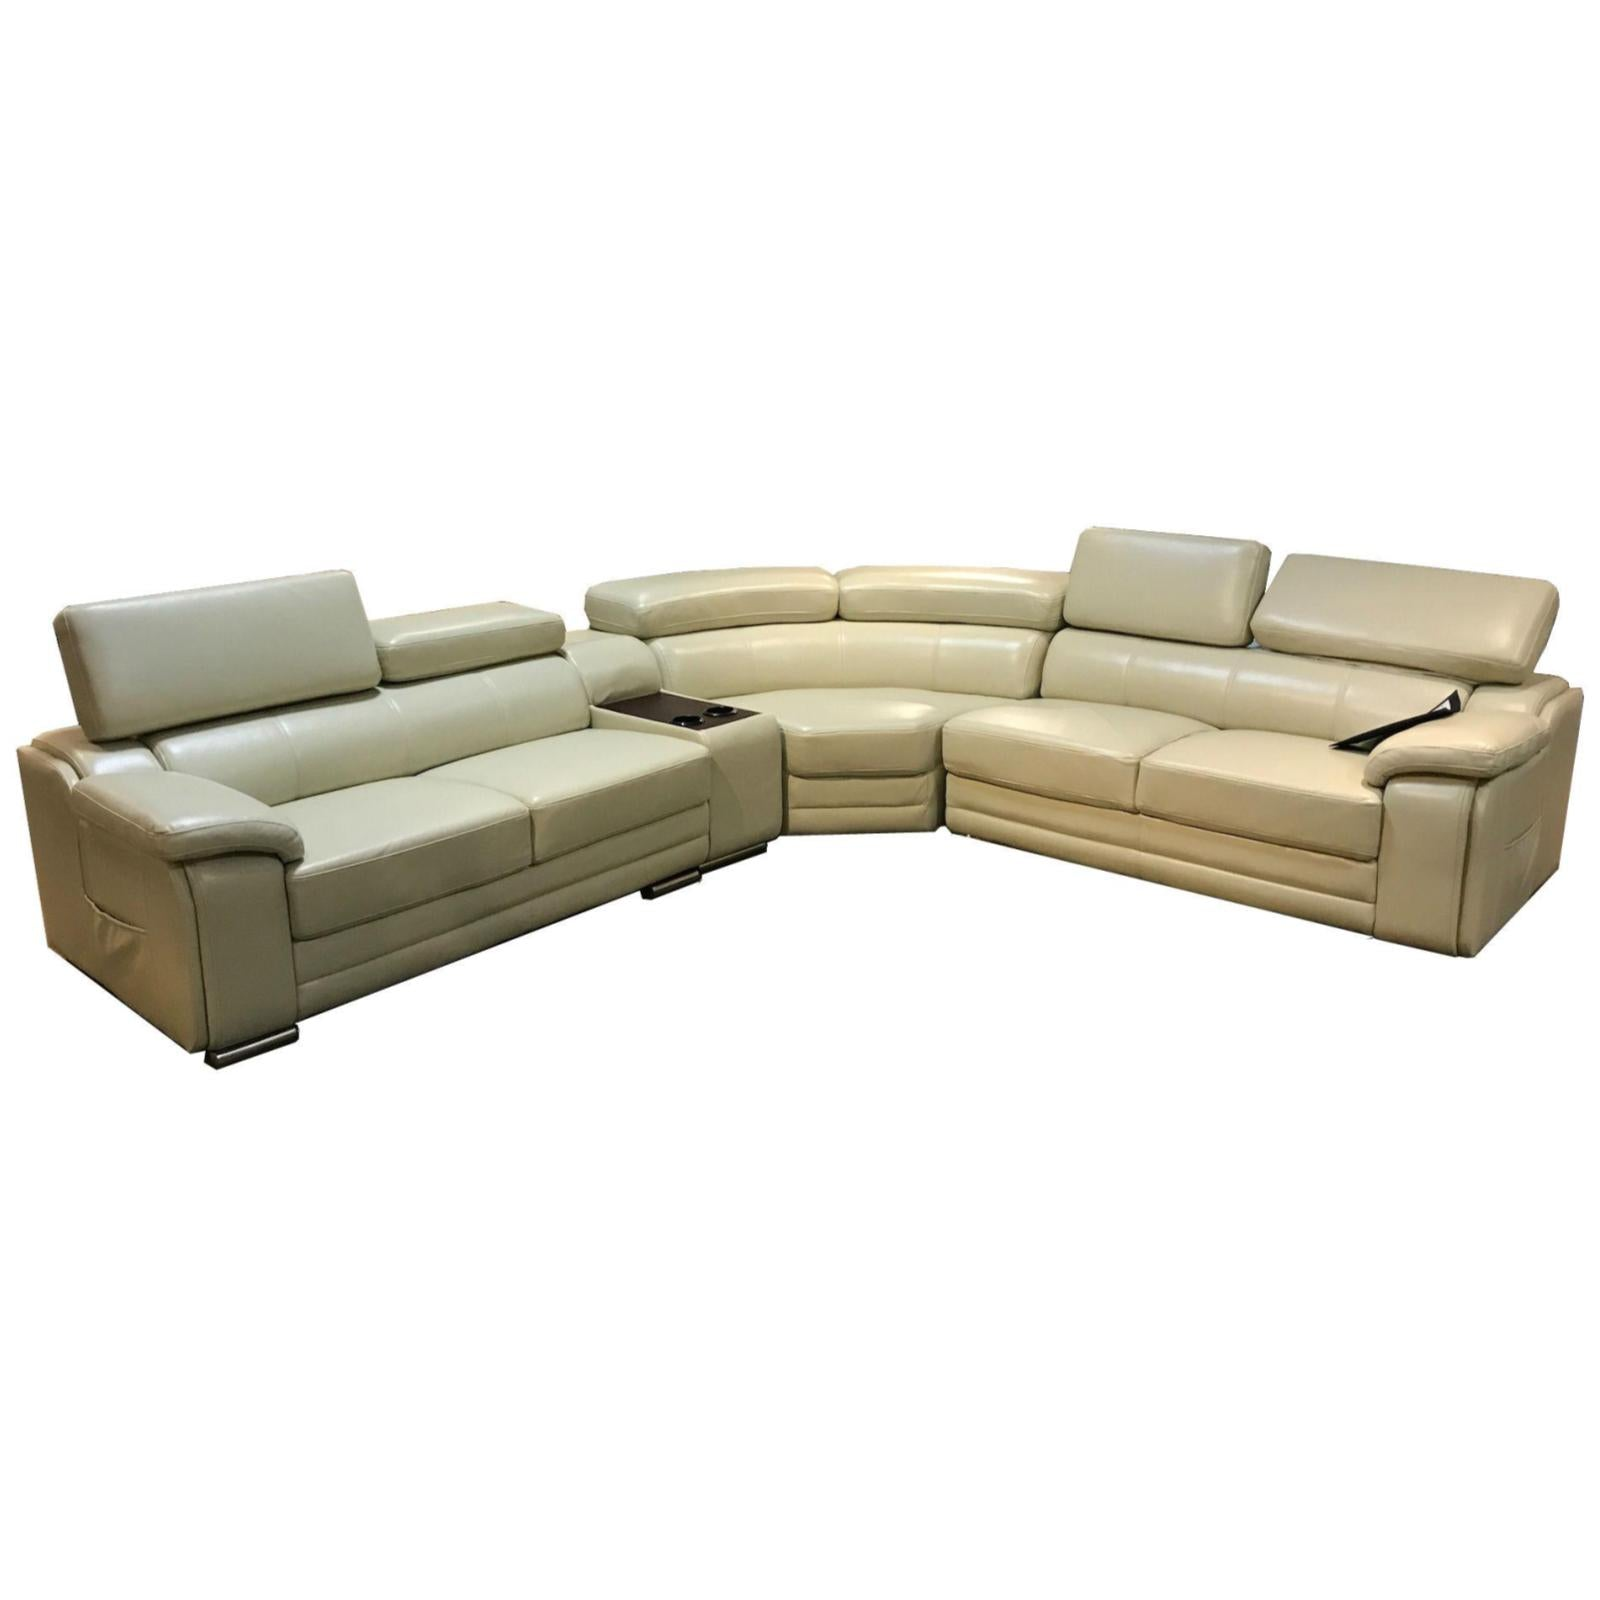 Santana Cream Sectional, Sectional, Grand Gold   Adams Furniture